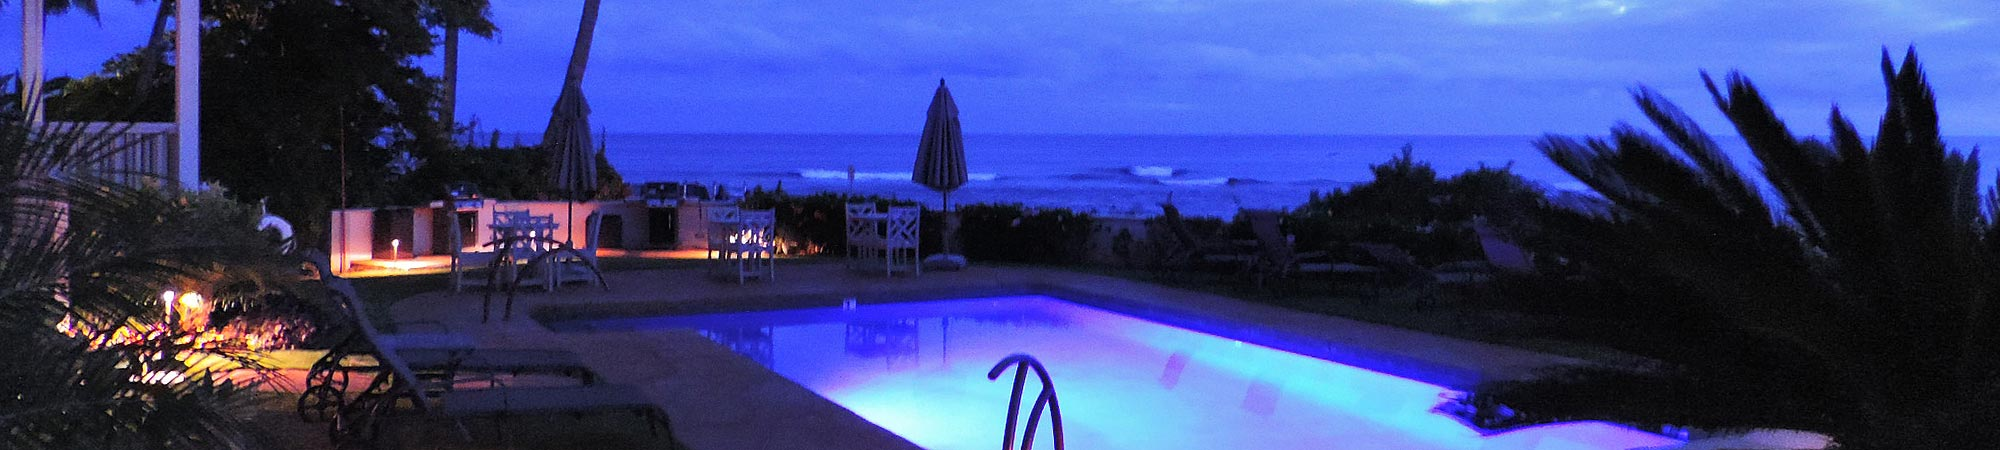 alihi lani pool ocean view twilight